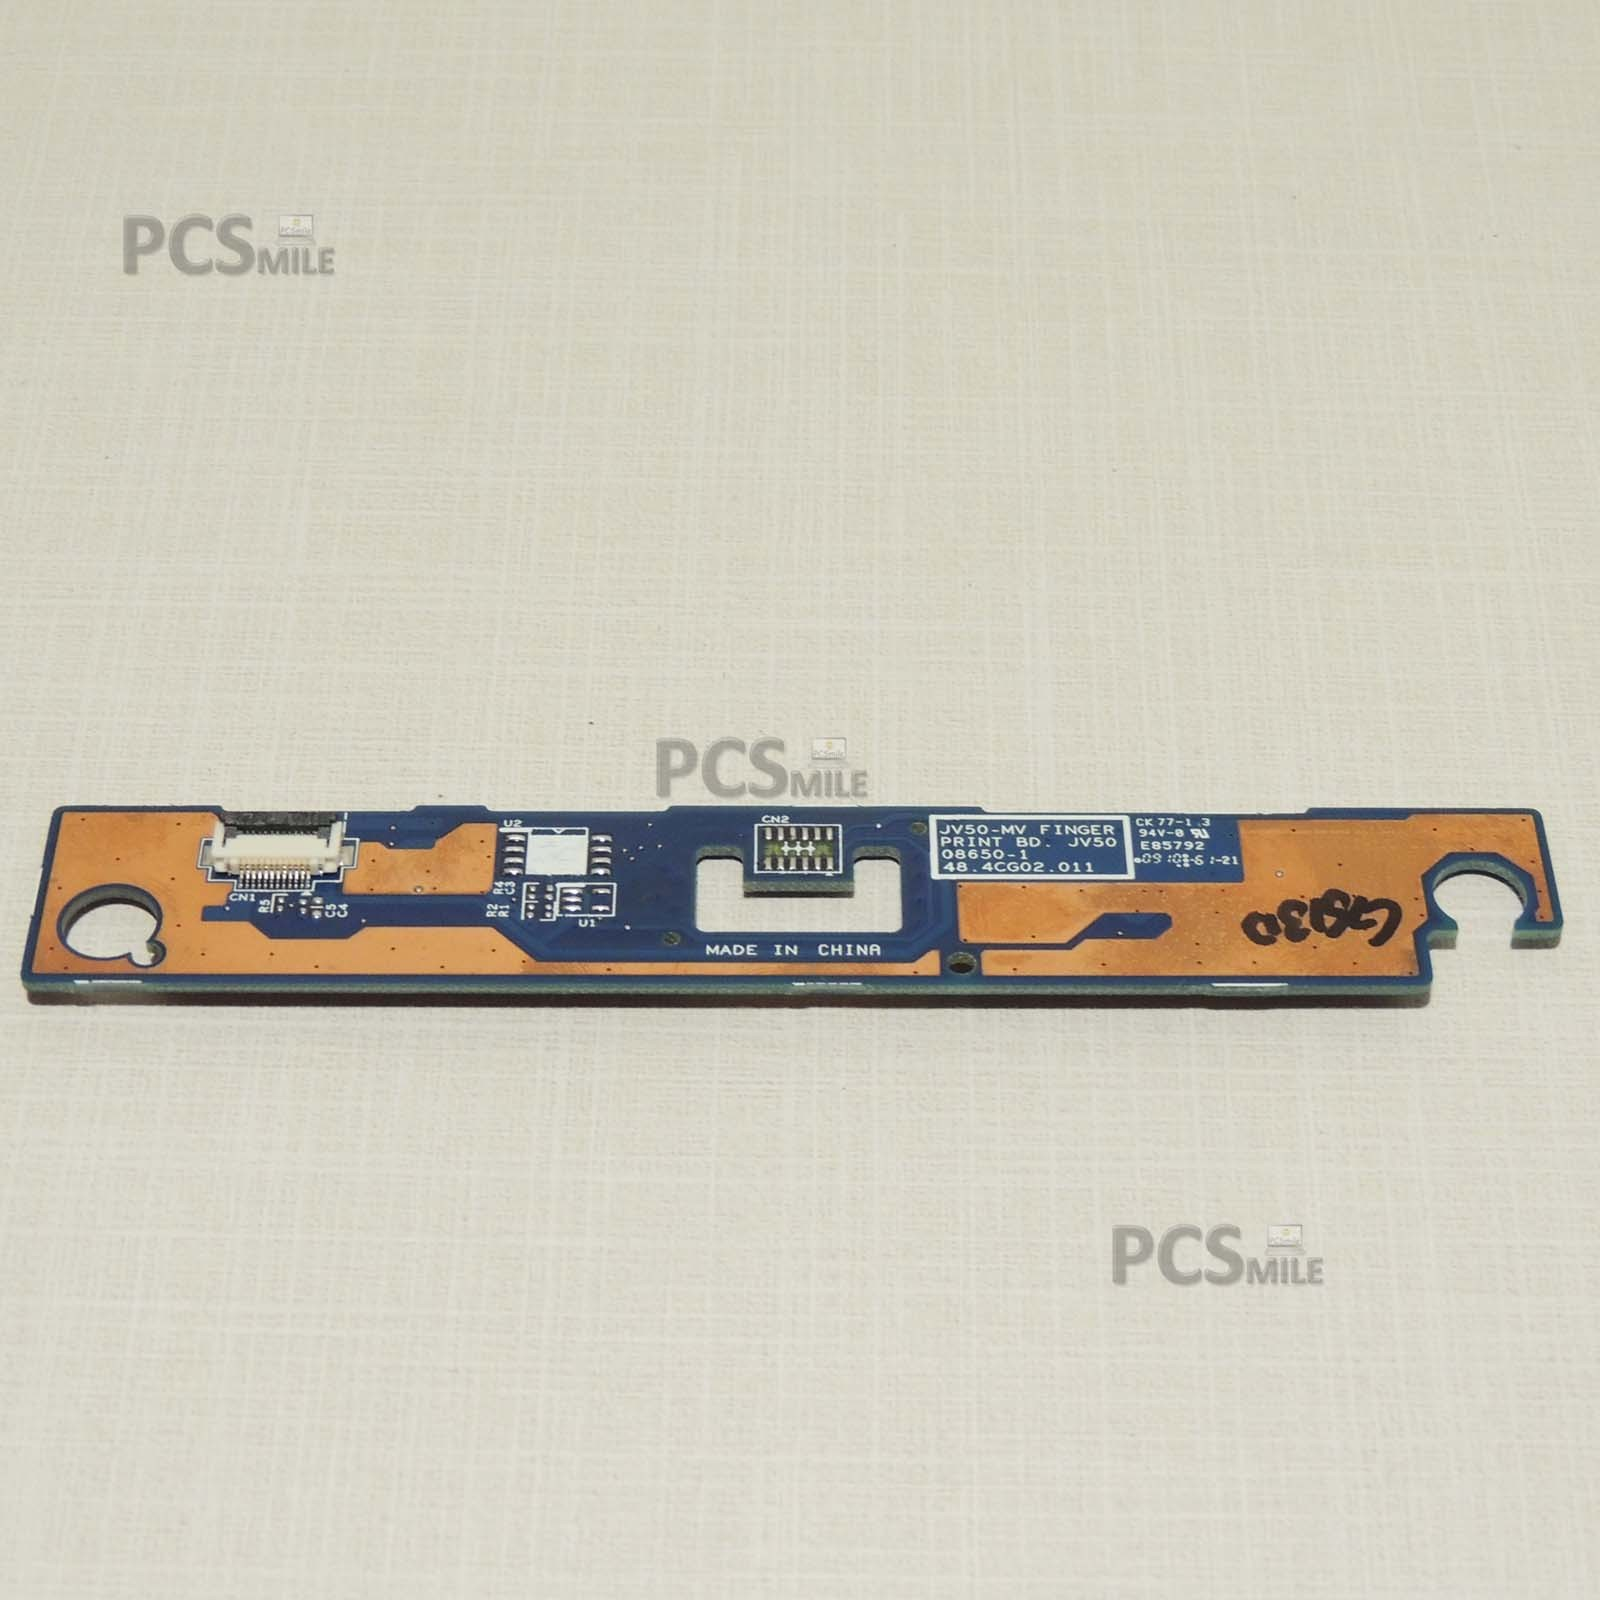 Tasti mouse button Acer Aspire 5536/5236 MS2265 48.4CG02.011